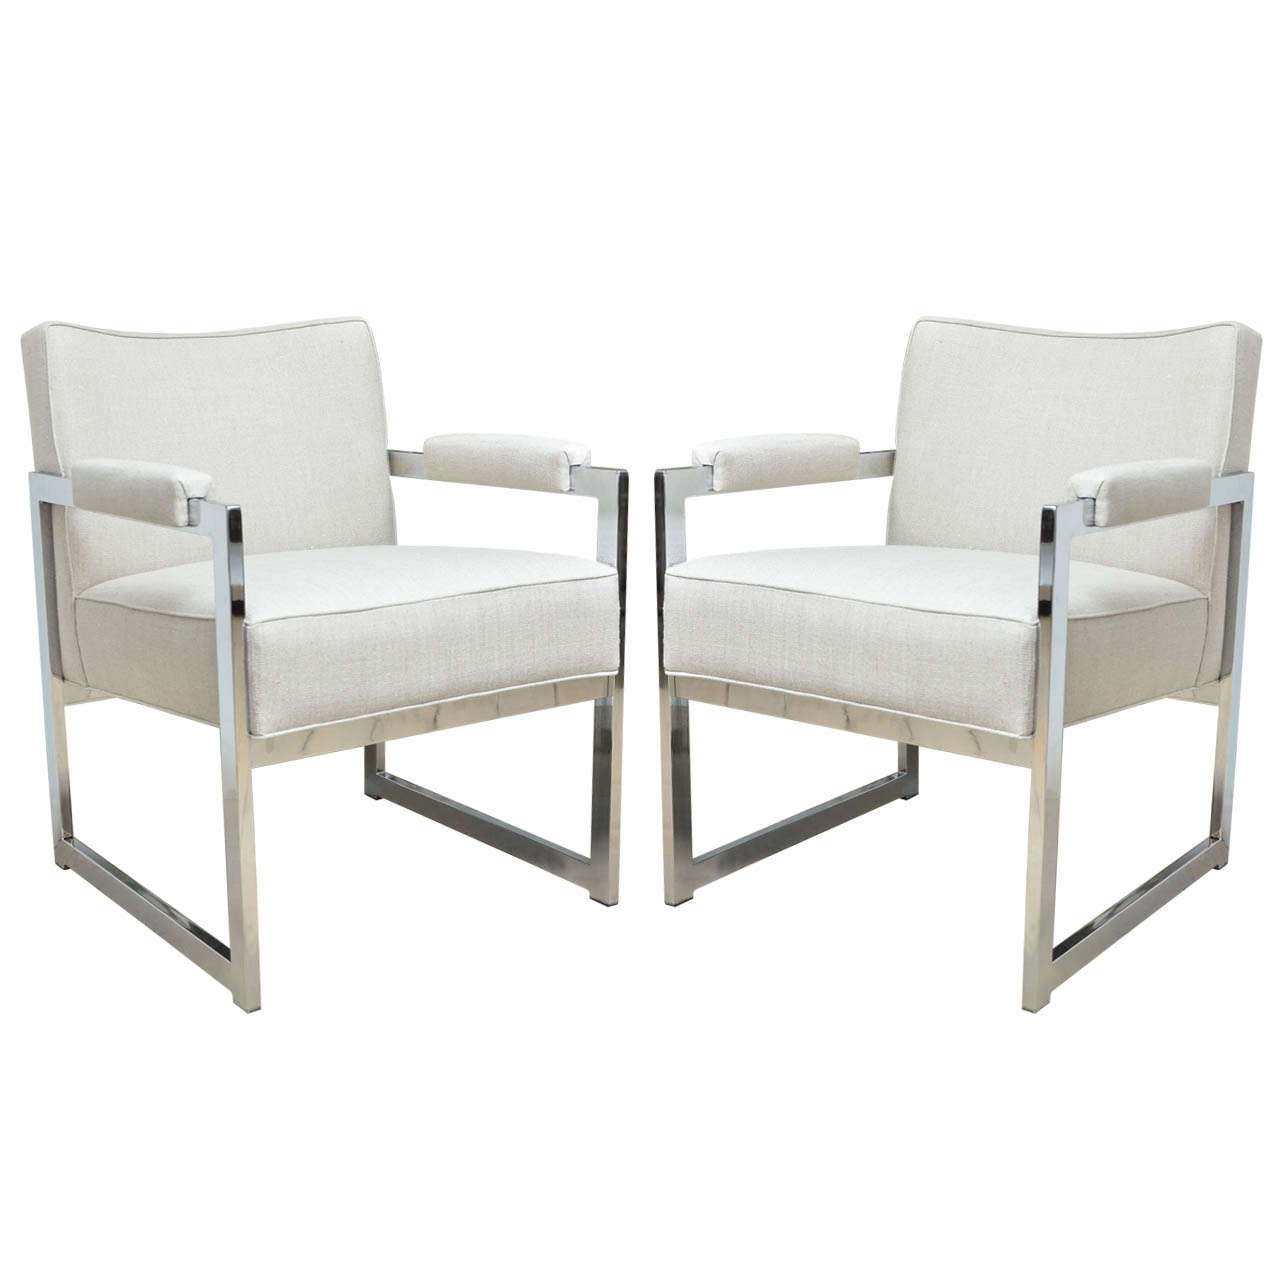 Pair of Chrome Frame Linen Upholstered Chairs by Milo Baughman